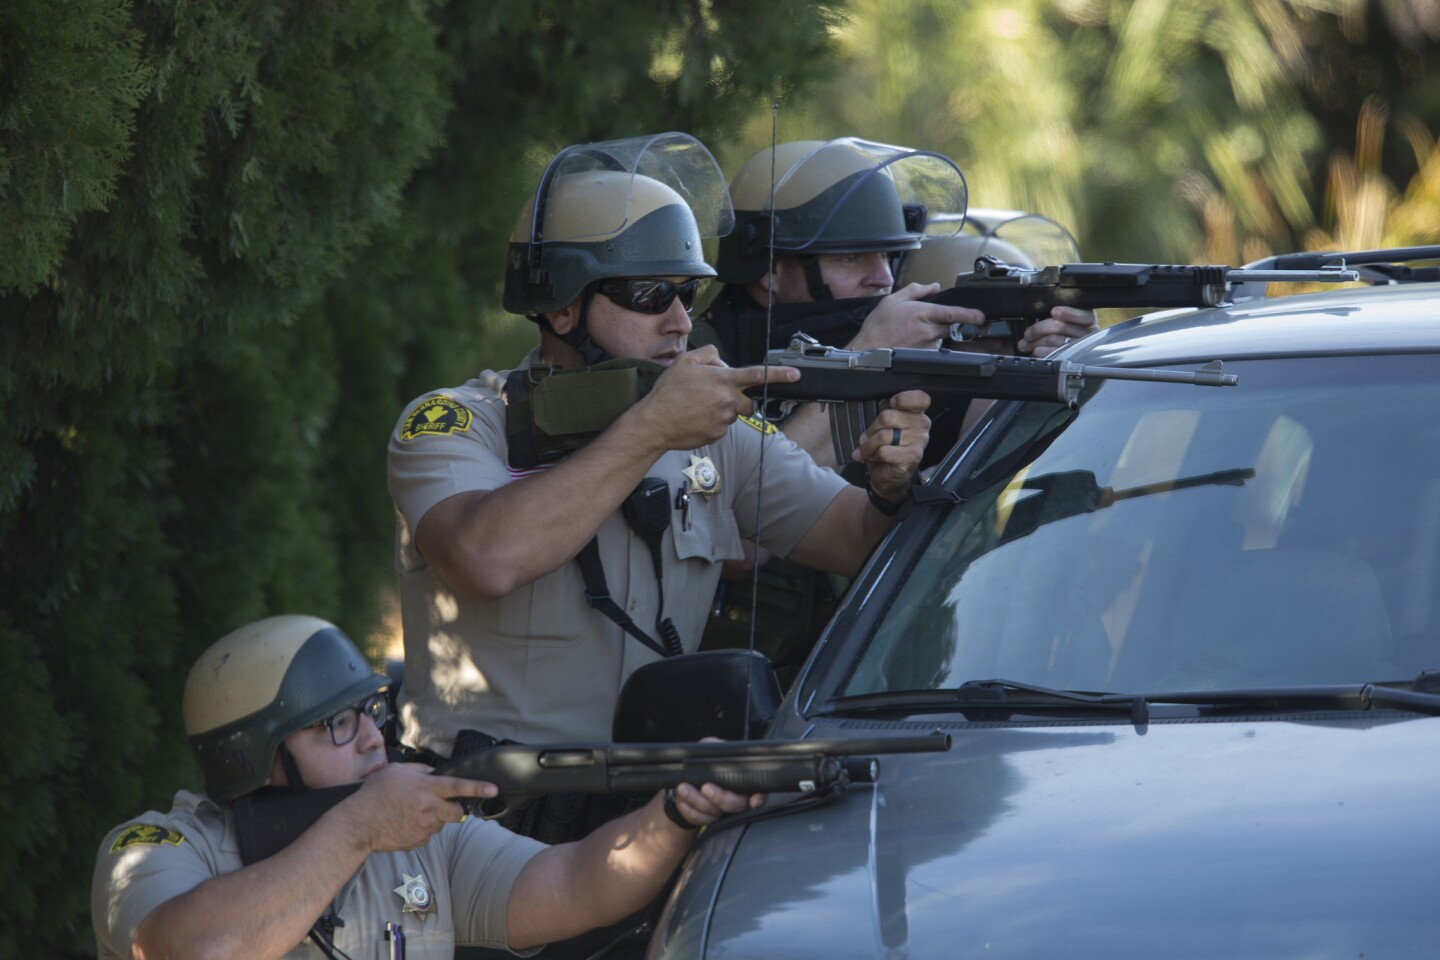 San Bernardino County sheriff's deputies draw guns behind a minivan on Richardson St. during a search for suspects involved in the mass shooting of 14 people at the Inland Regional Center in San Bernardino.